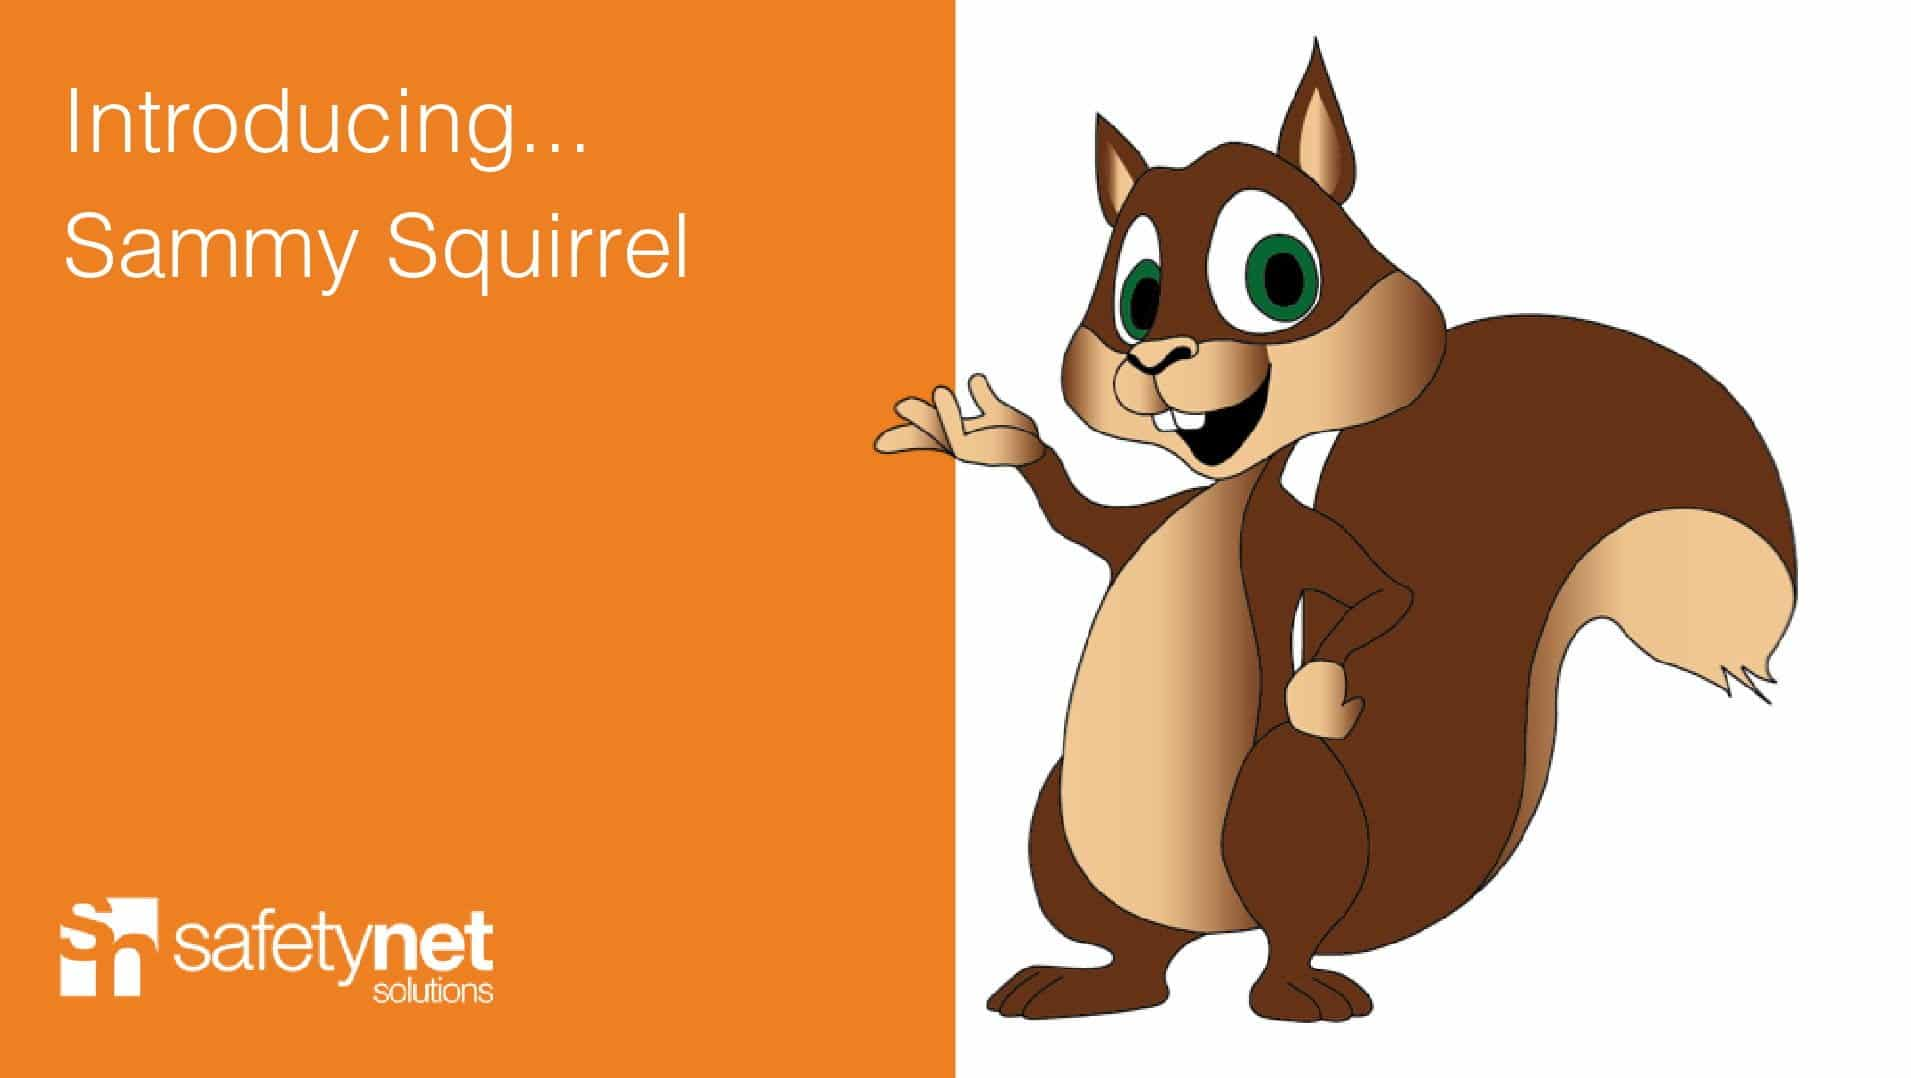 Introducing...Sammy Squirrel